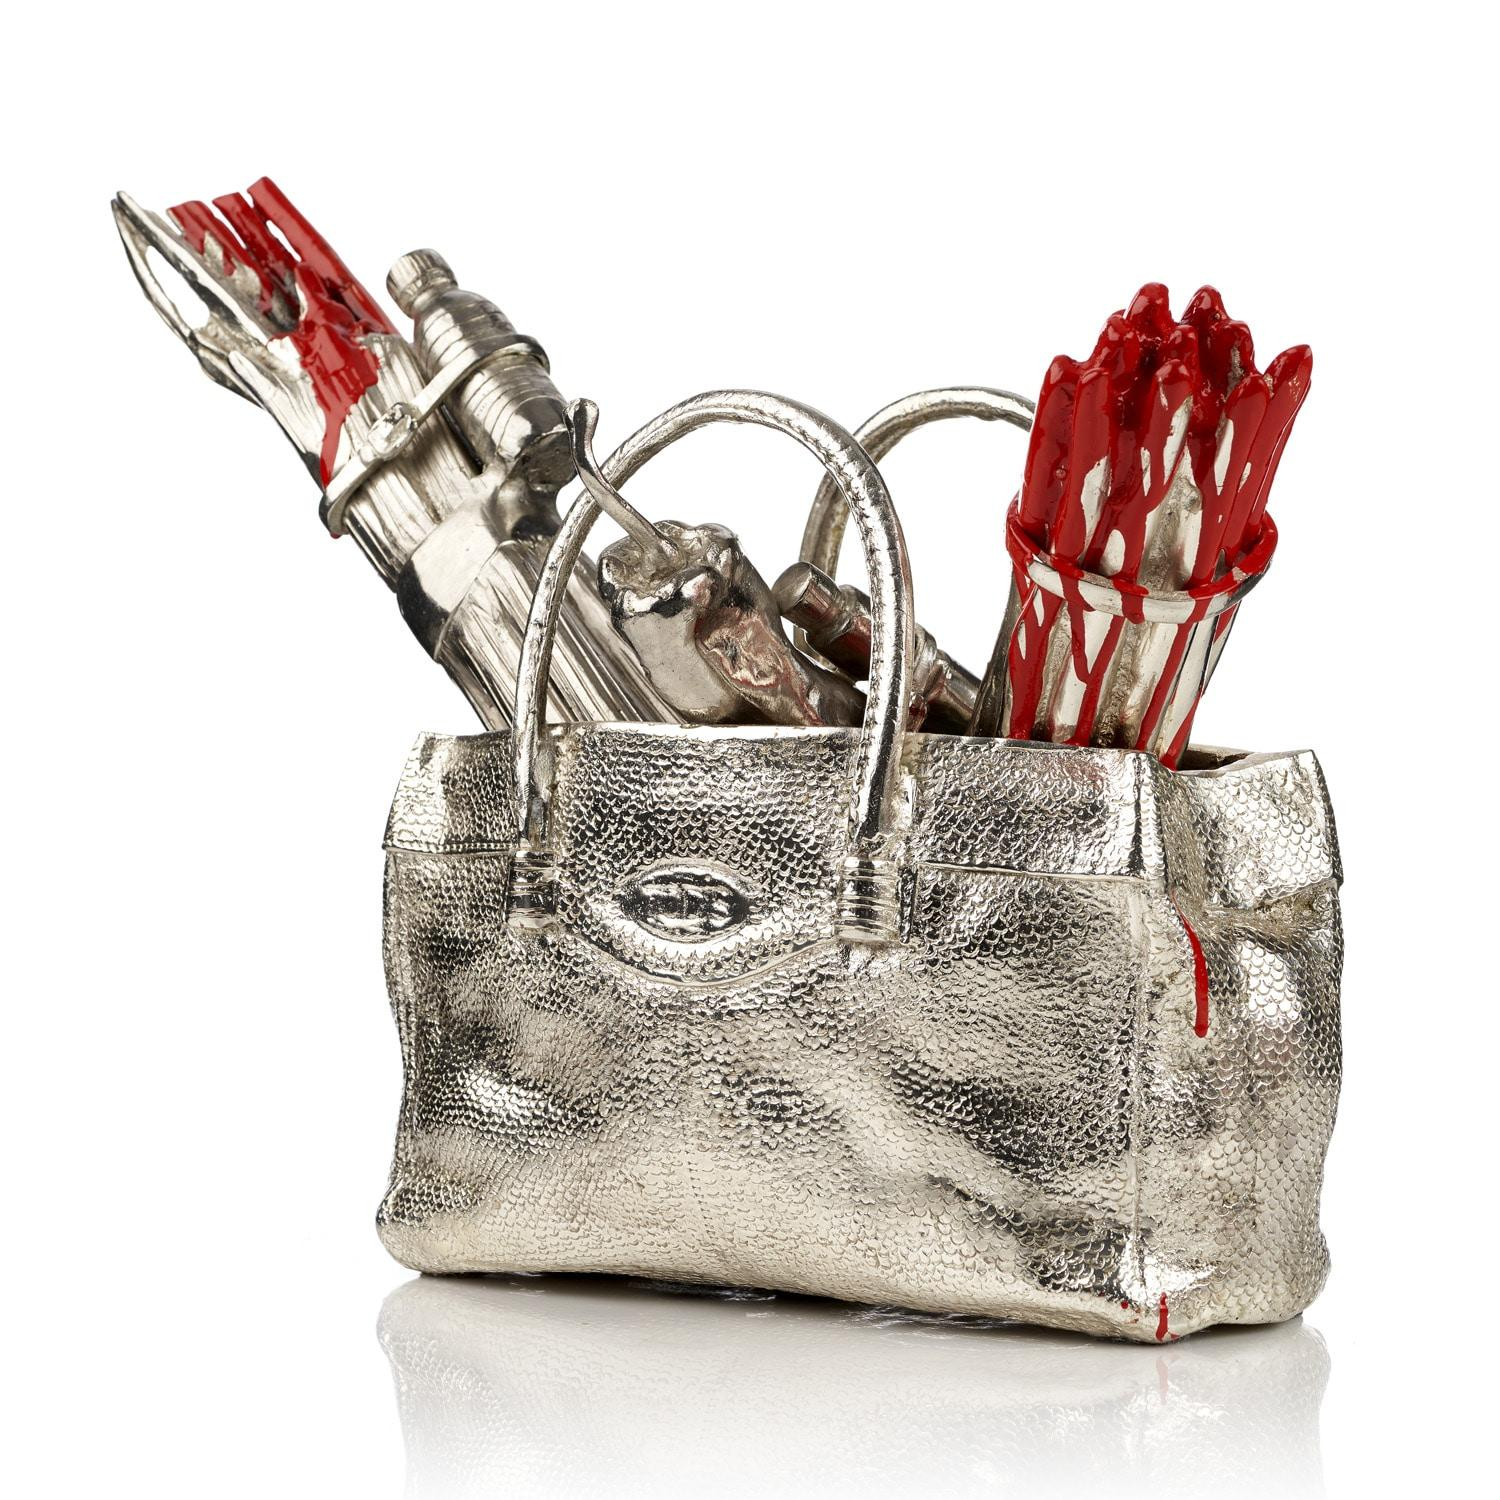 Cloned handbag with vegetables